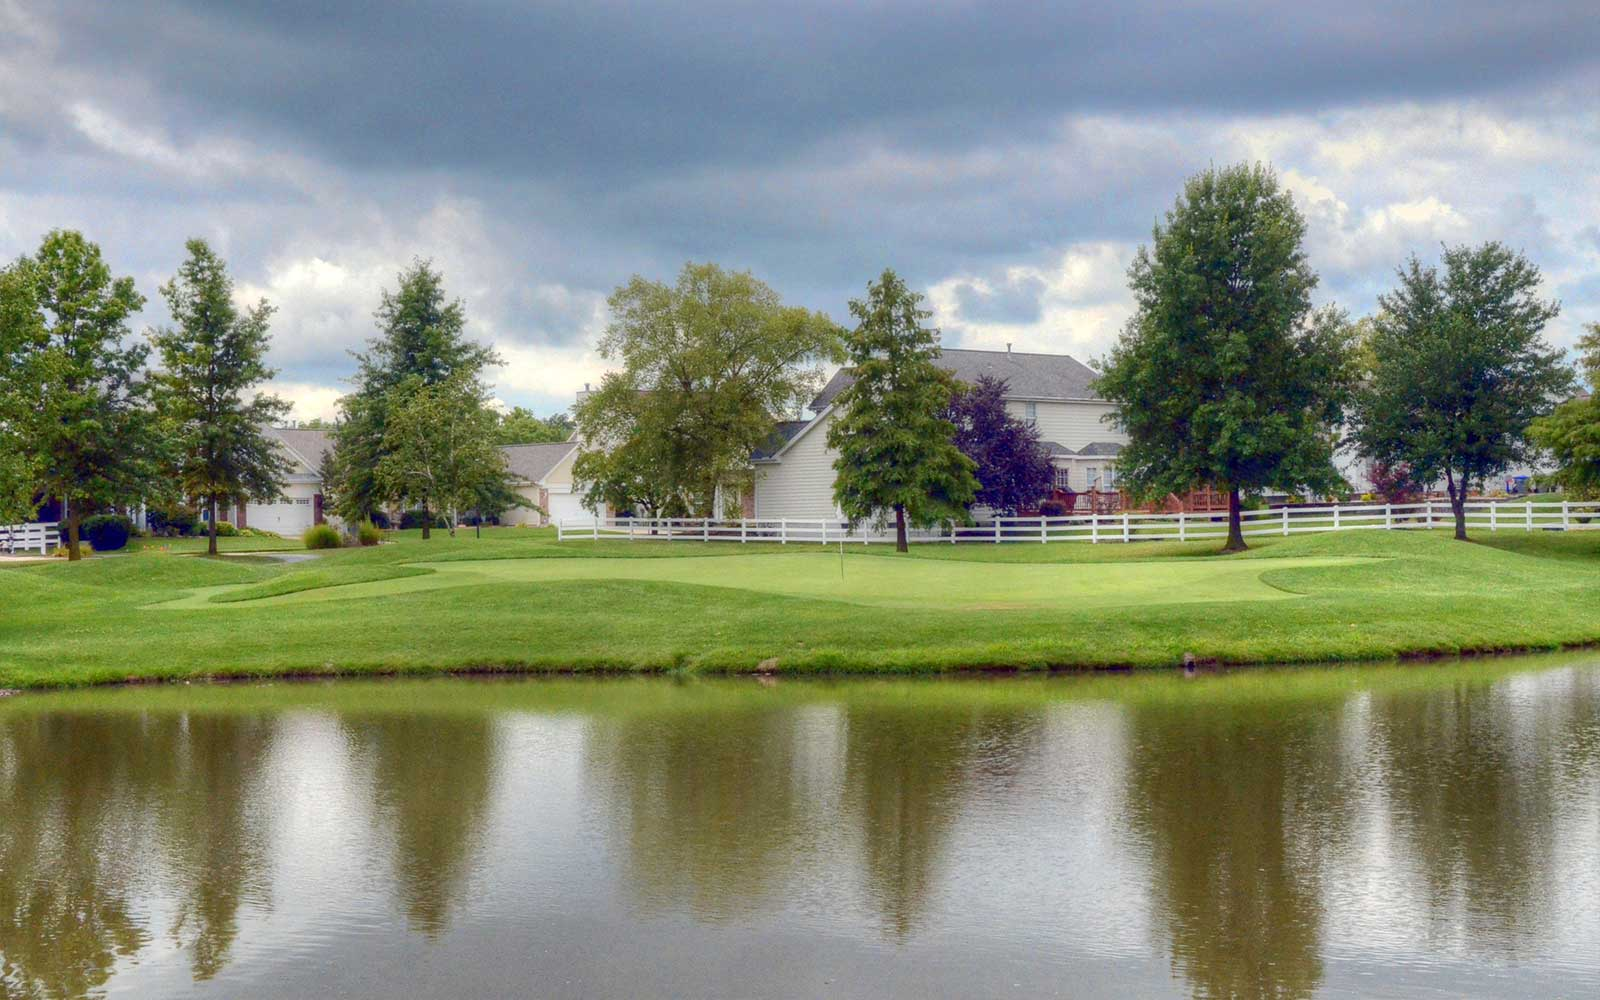 The-Falls-Golf-Club,-O'Fallon,-MO-Reflection